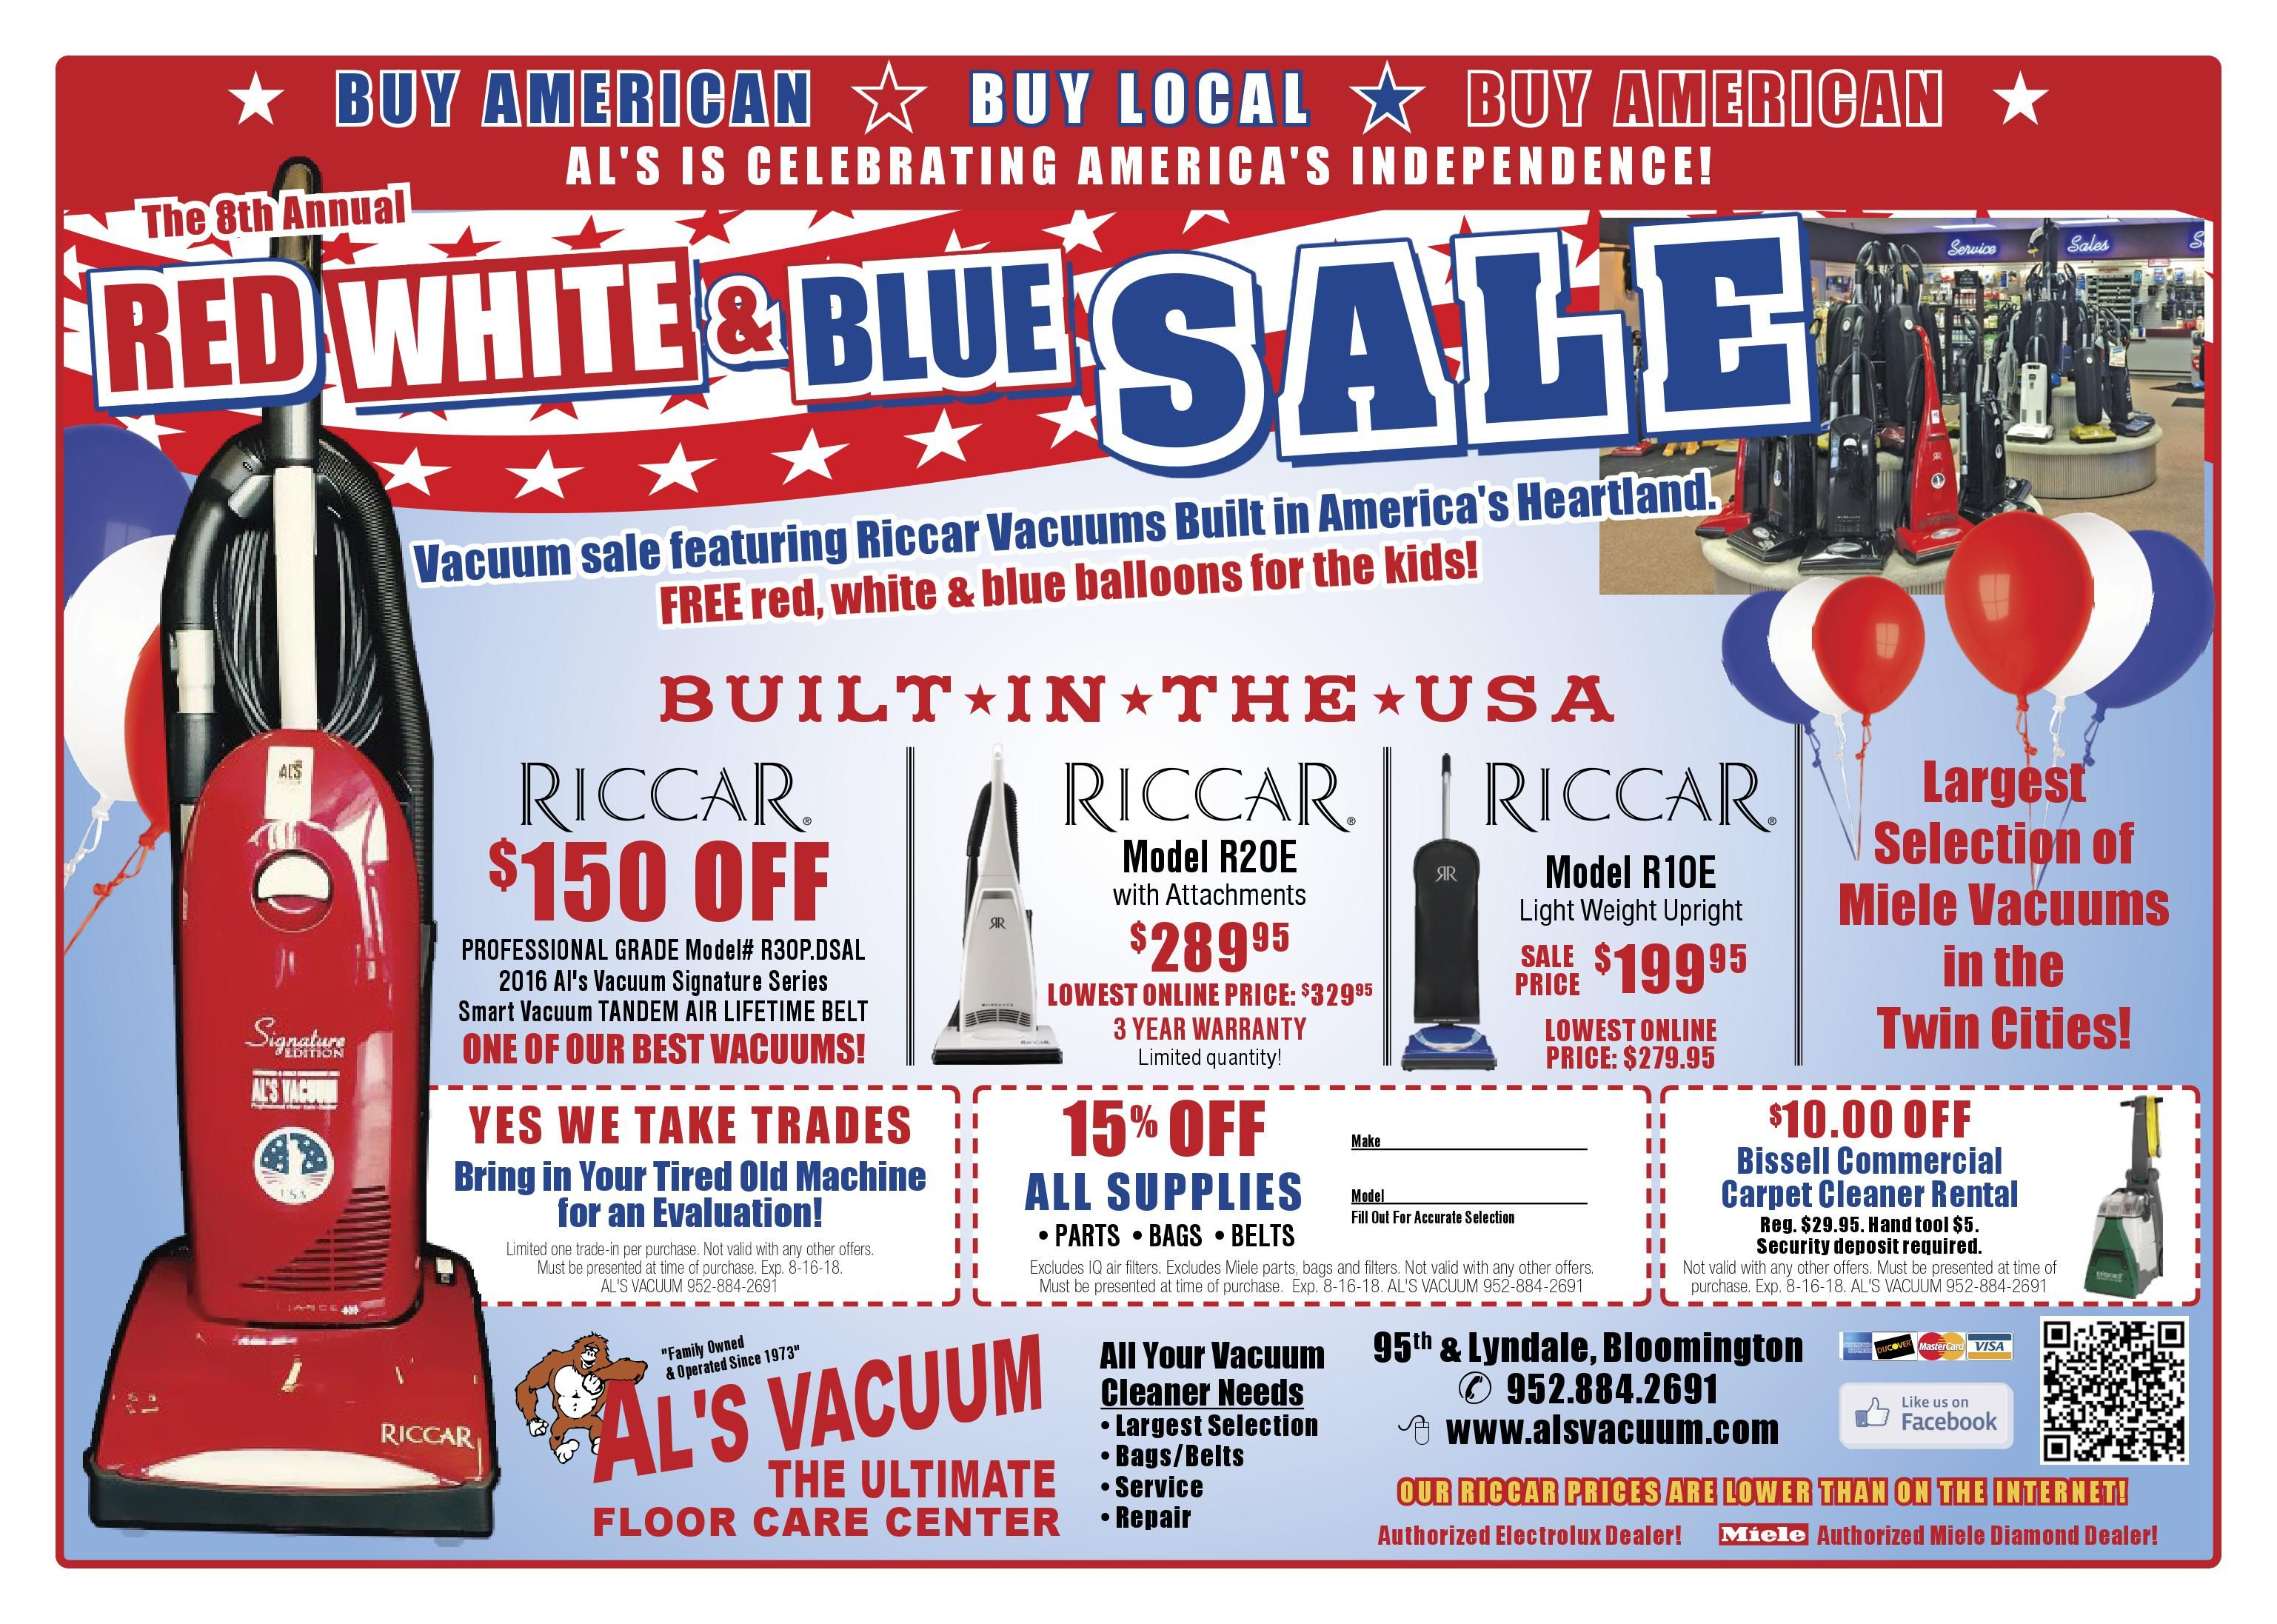 We Are Celebrating The 8th Annual Al S Vacuum Red White And Blue Sale Featuring Riccar Vacuums Built In America S Heart Riccar Vacuum Miele Vacuum Floorcare